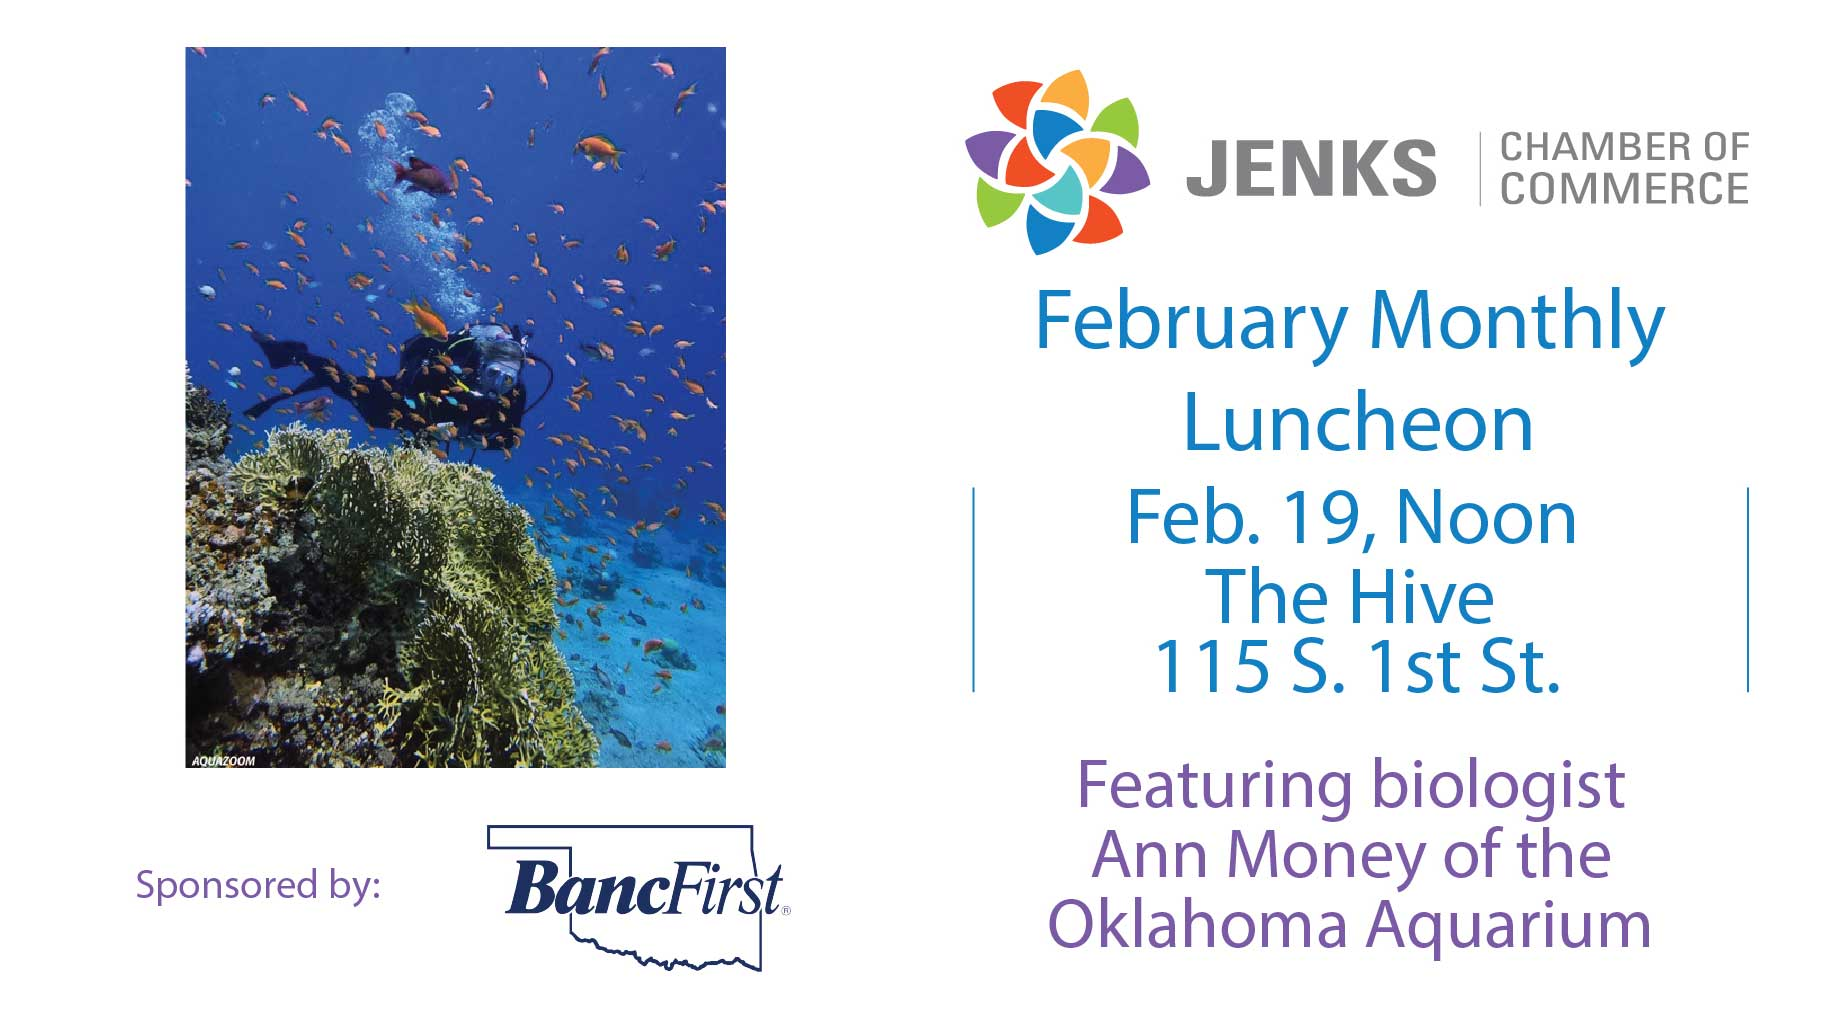 A graphic for the Feb. 19 Monthly Luncheon, featuring Ann Money